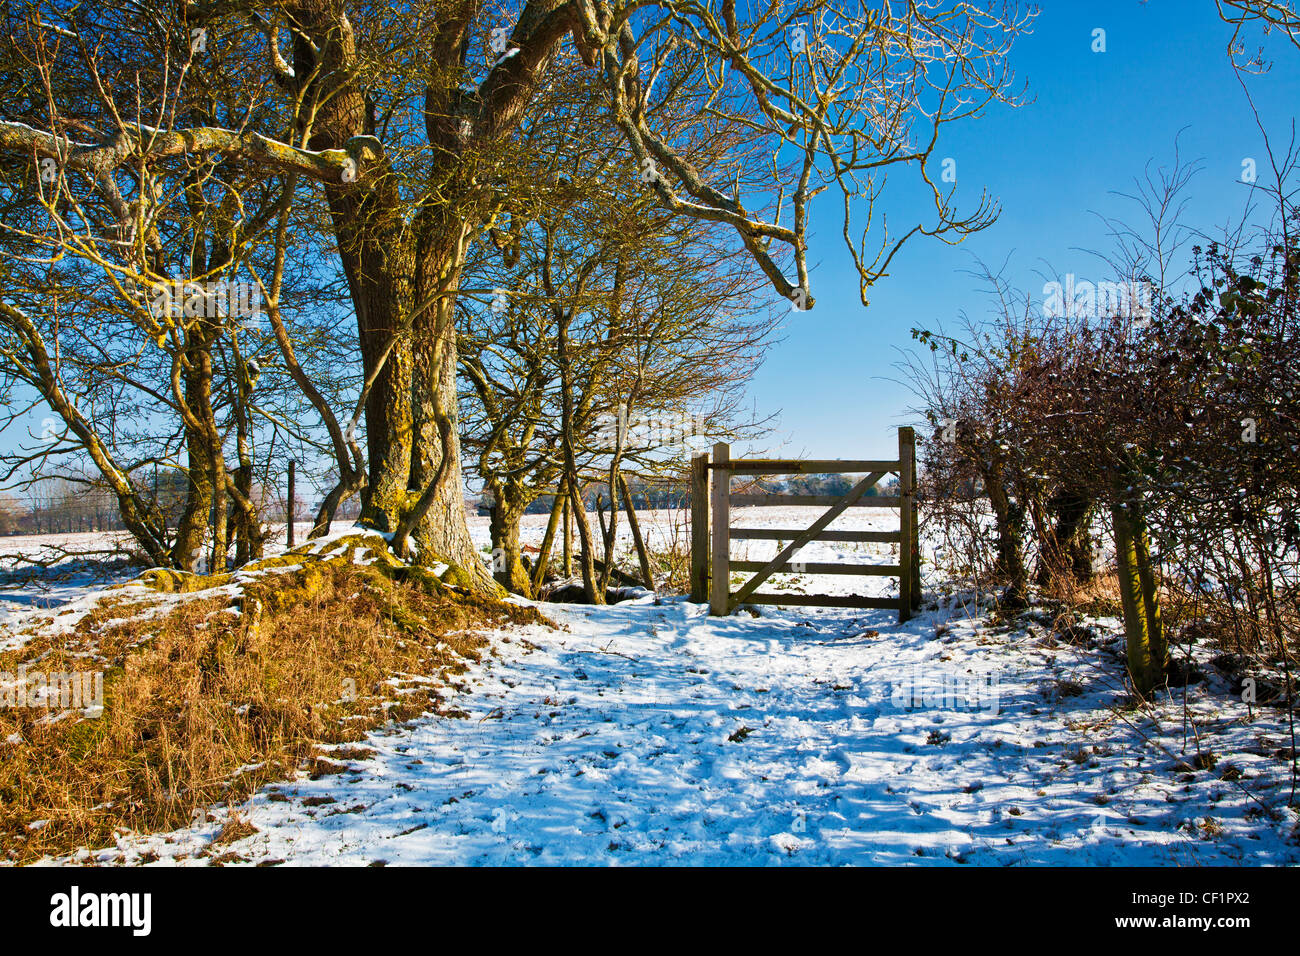 A bright snowy sunny Cotswold view near the Ampneys, Gloucestershire, England, UK Stock Photo